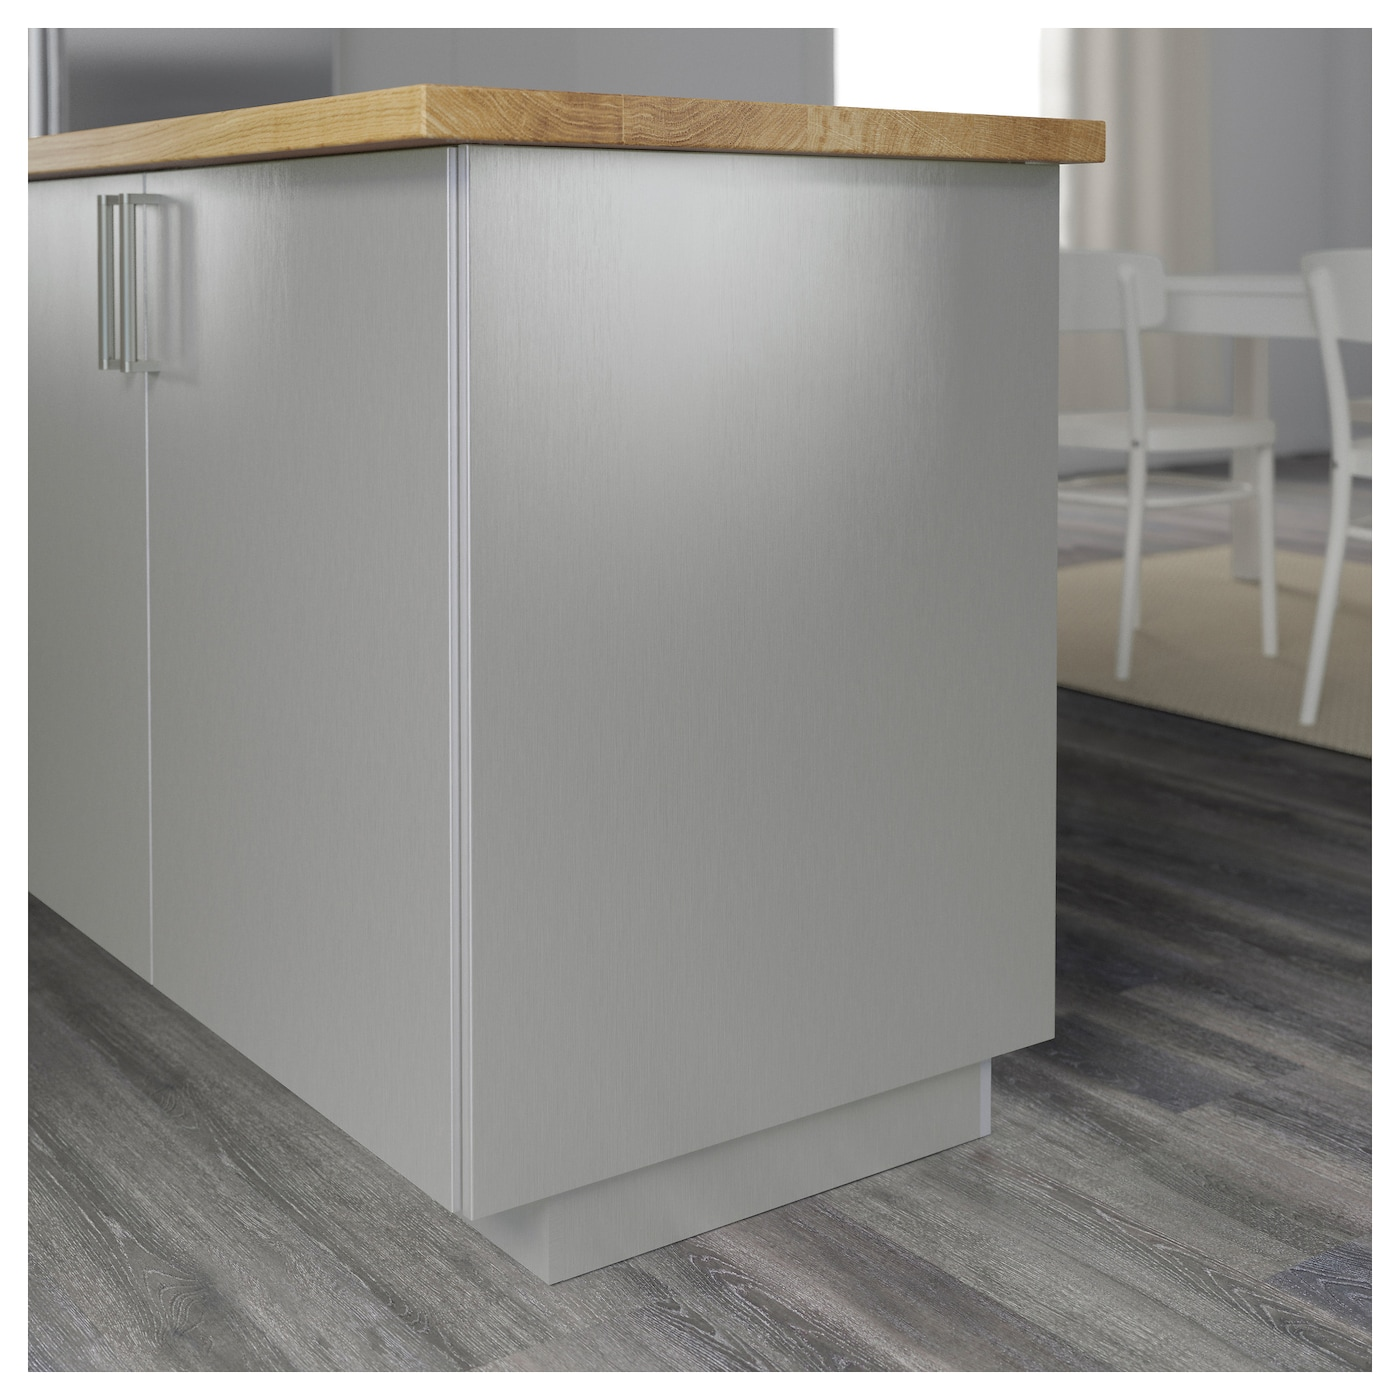 stainless kitchen cabinet doors grevsta cover panel stainless steel 39 x 100 cm ikea 26602